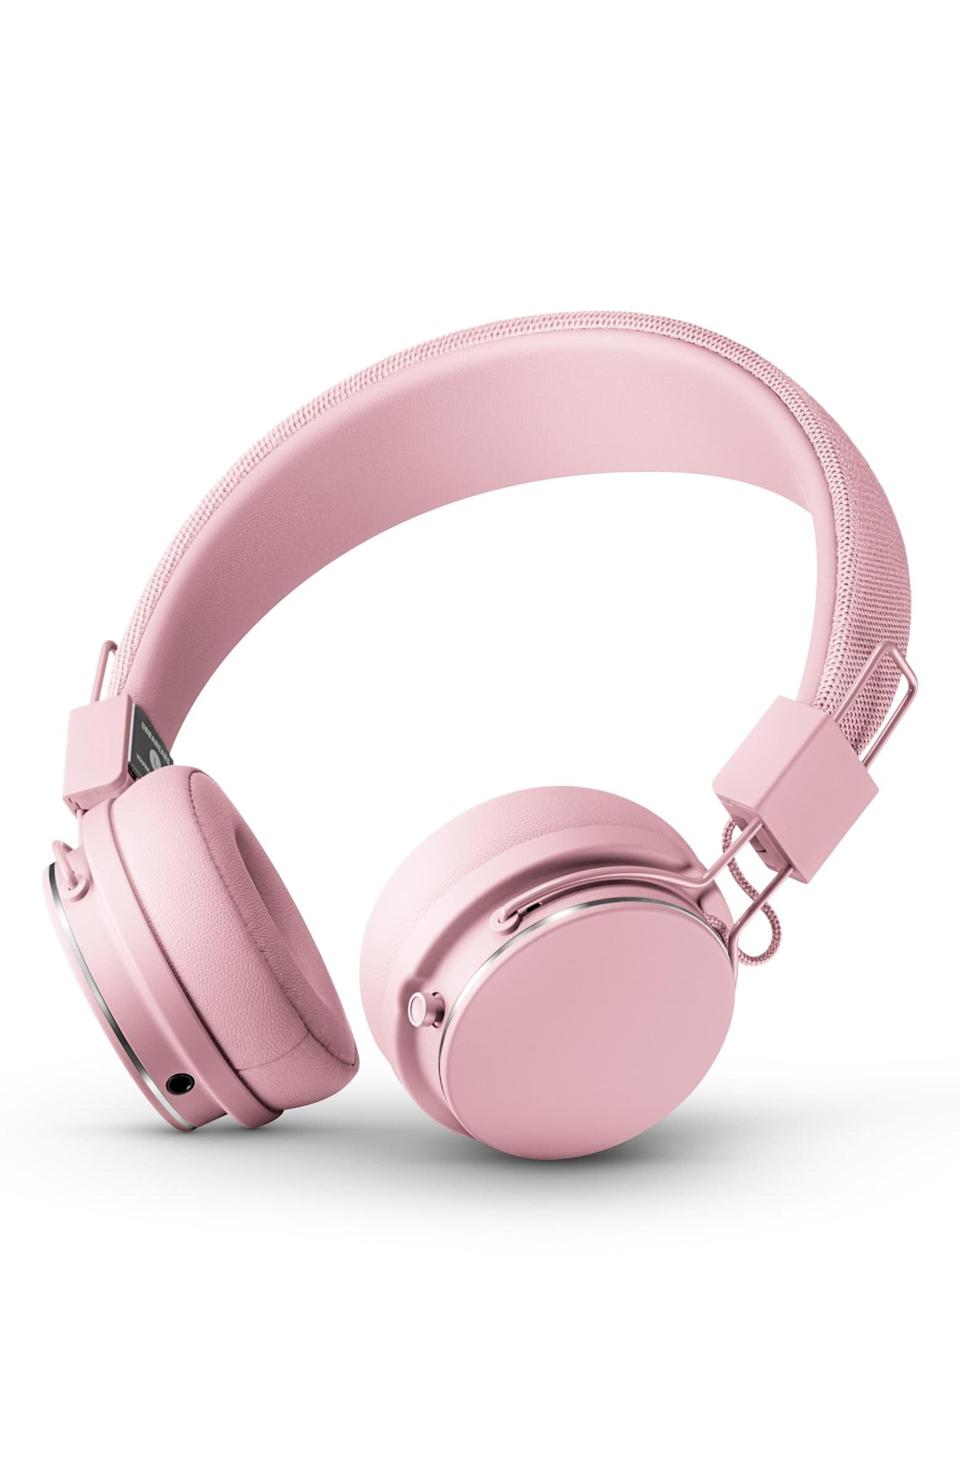 "<p>They can listen to their favorite tunes on these <a href=""https://www.popsugar.com/buy/Urbanears-Plattan-II-Wireless-Bluetooth-Headphones-532952?p_name=Urbanears%20Plattan%20II%20Wireless%20Bluetooth%20Headphones&retailer=shop.nordstrom.com&pid=532952&price=49&evar1=fab%3Aus&evar9=36291197&evar98=https%3A%2F%2Fwww.popsugar.com%2Ffashion%2Fphoto-gallery%2F36291197%2Fimage%2F47027900%2FUrbanears-Plattan-II-Wireless-Bluetooth-Headphones&list1=shopping%2Choliday%2Cwinter%2Cgift%20guide%2Cwinter%20fashion%2Choliday%20fashion%2Cfashion%20gifts&prop13=api&pdata=1"" rel=""nofollow noopener"" class=""link rapid-noclick-resp"" target=""_blank"" data-ylk=""slk:Urbanears Plattan II Wireless Bluetooth Headphones"">Urbanears Plattan II Wireless Bluetooth Headphones</a> ($49, originally $100).</p>"